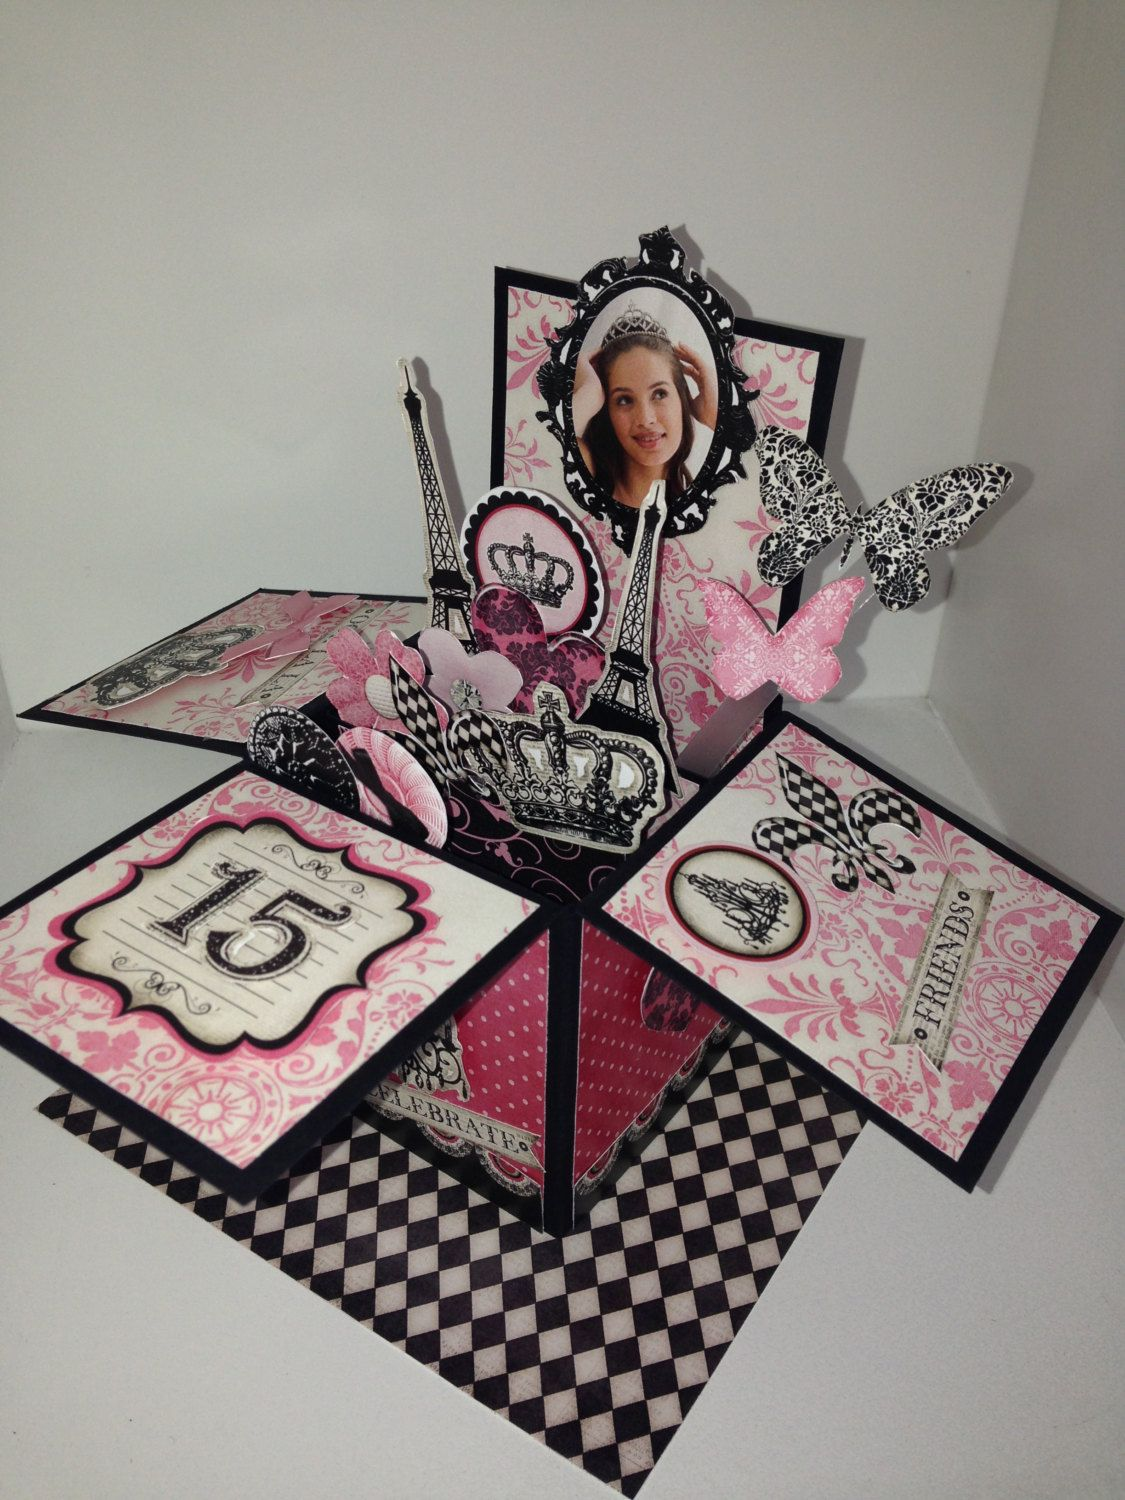 20 Quince or Sweet 16 Invitations - 3D pop up cards in a box. by Invitorium on Etsy